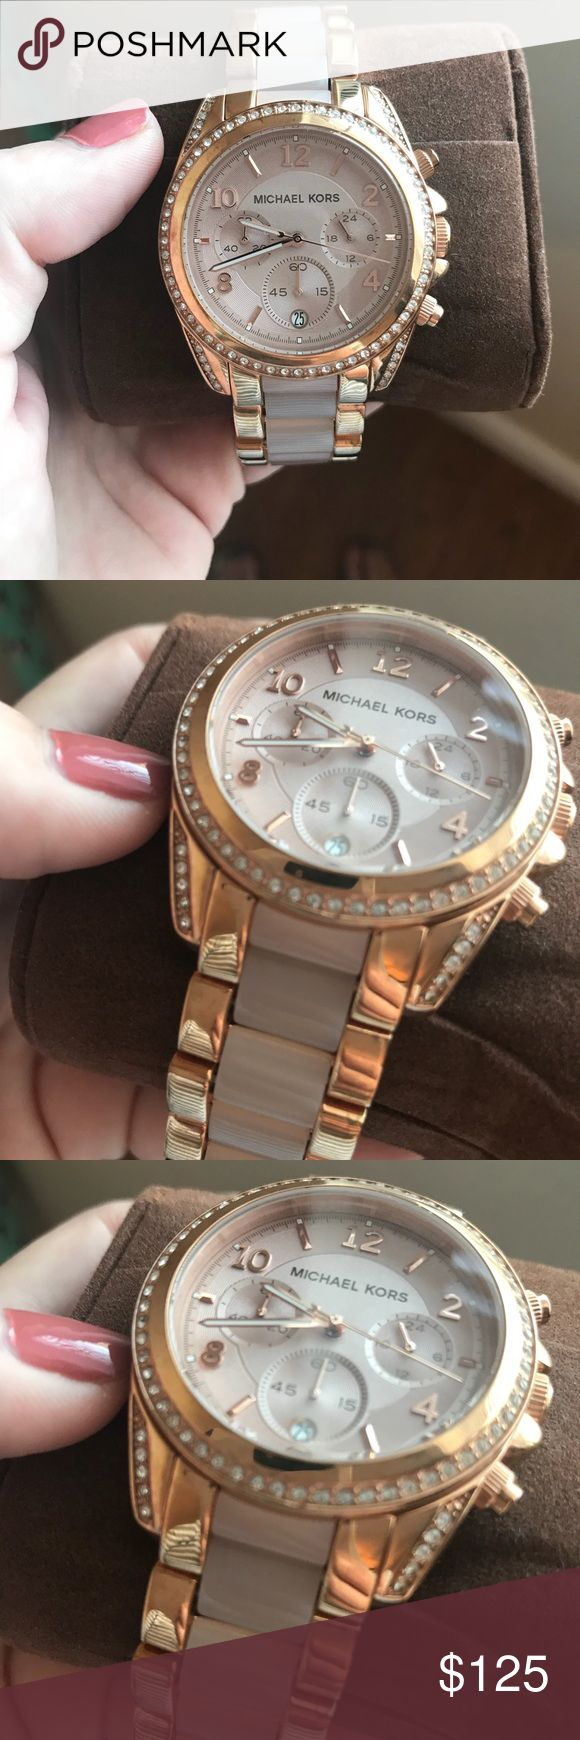 Like New Michael Kors rose gold watch Received as a gift and only worn once - didn't even have it sized so all links are in it. Looks amazing super pretty rose gold and pink Michael Kors watch. Box and the cushion are included. Does need a new watch battery. Michael Kors Accessories Watches